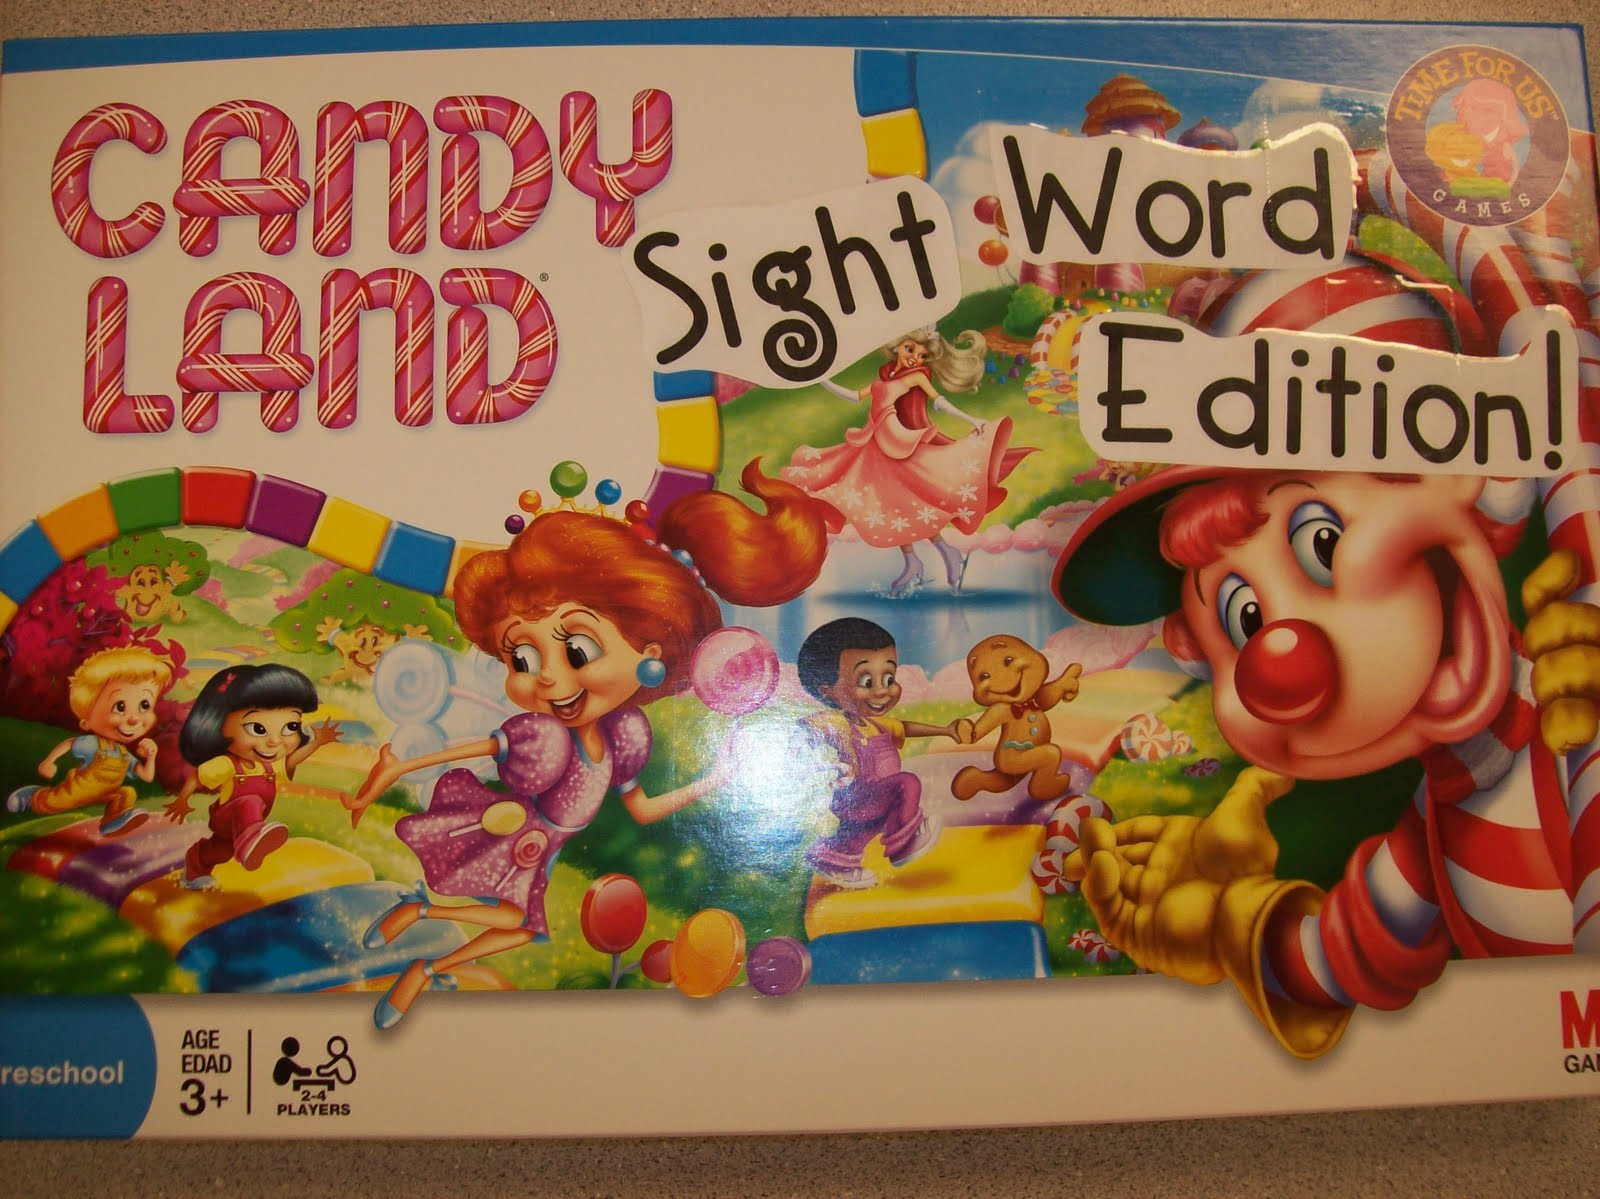 First Grader Last Candy Land Sight Word Edition